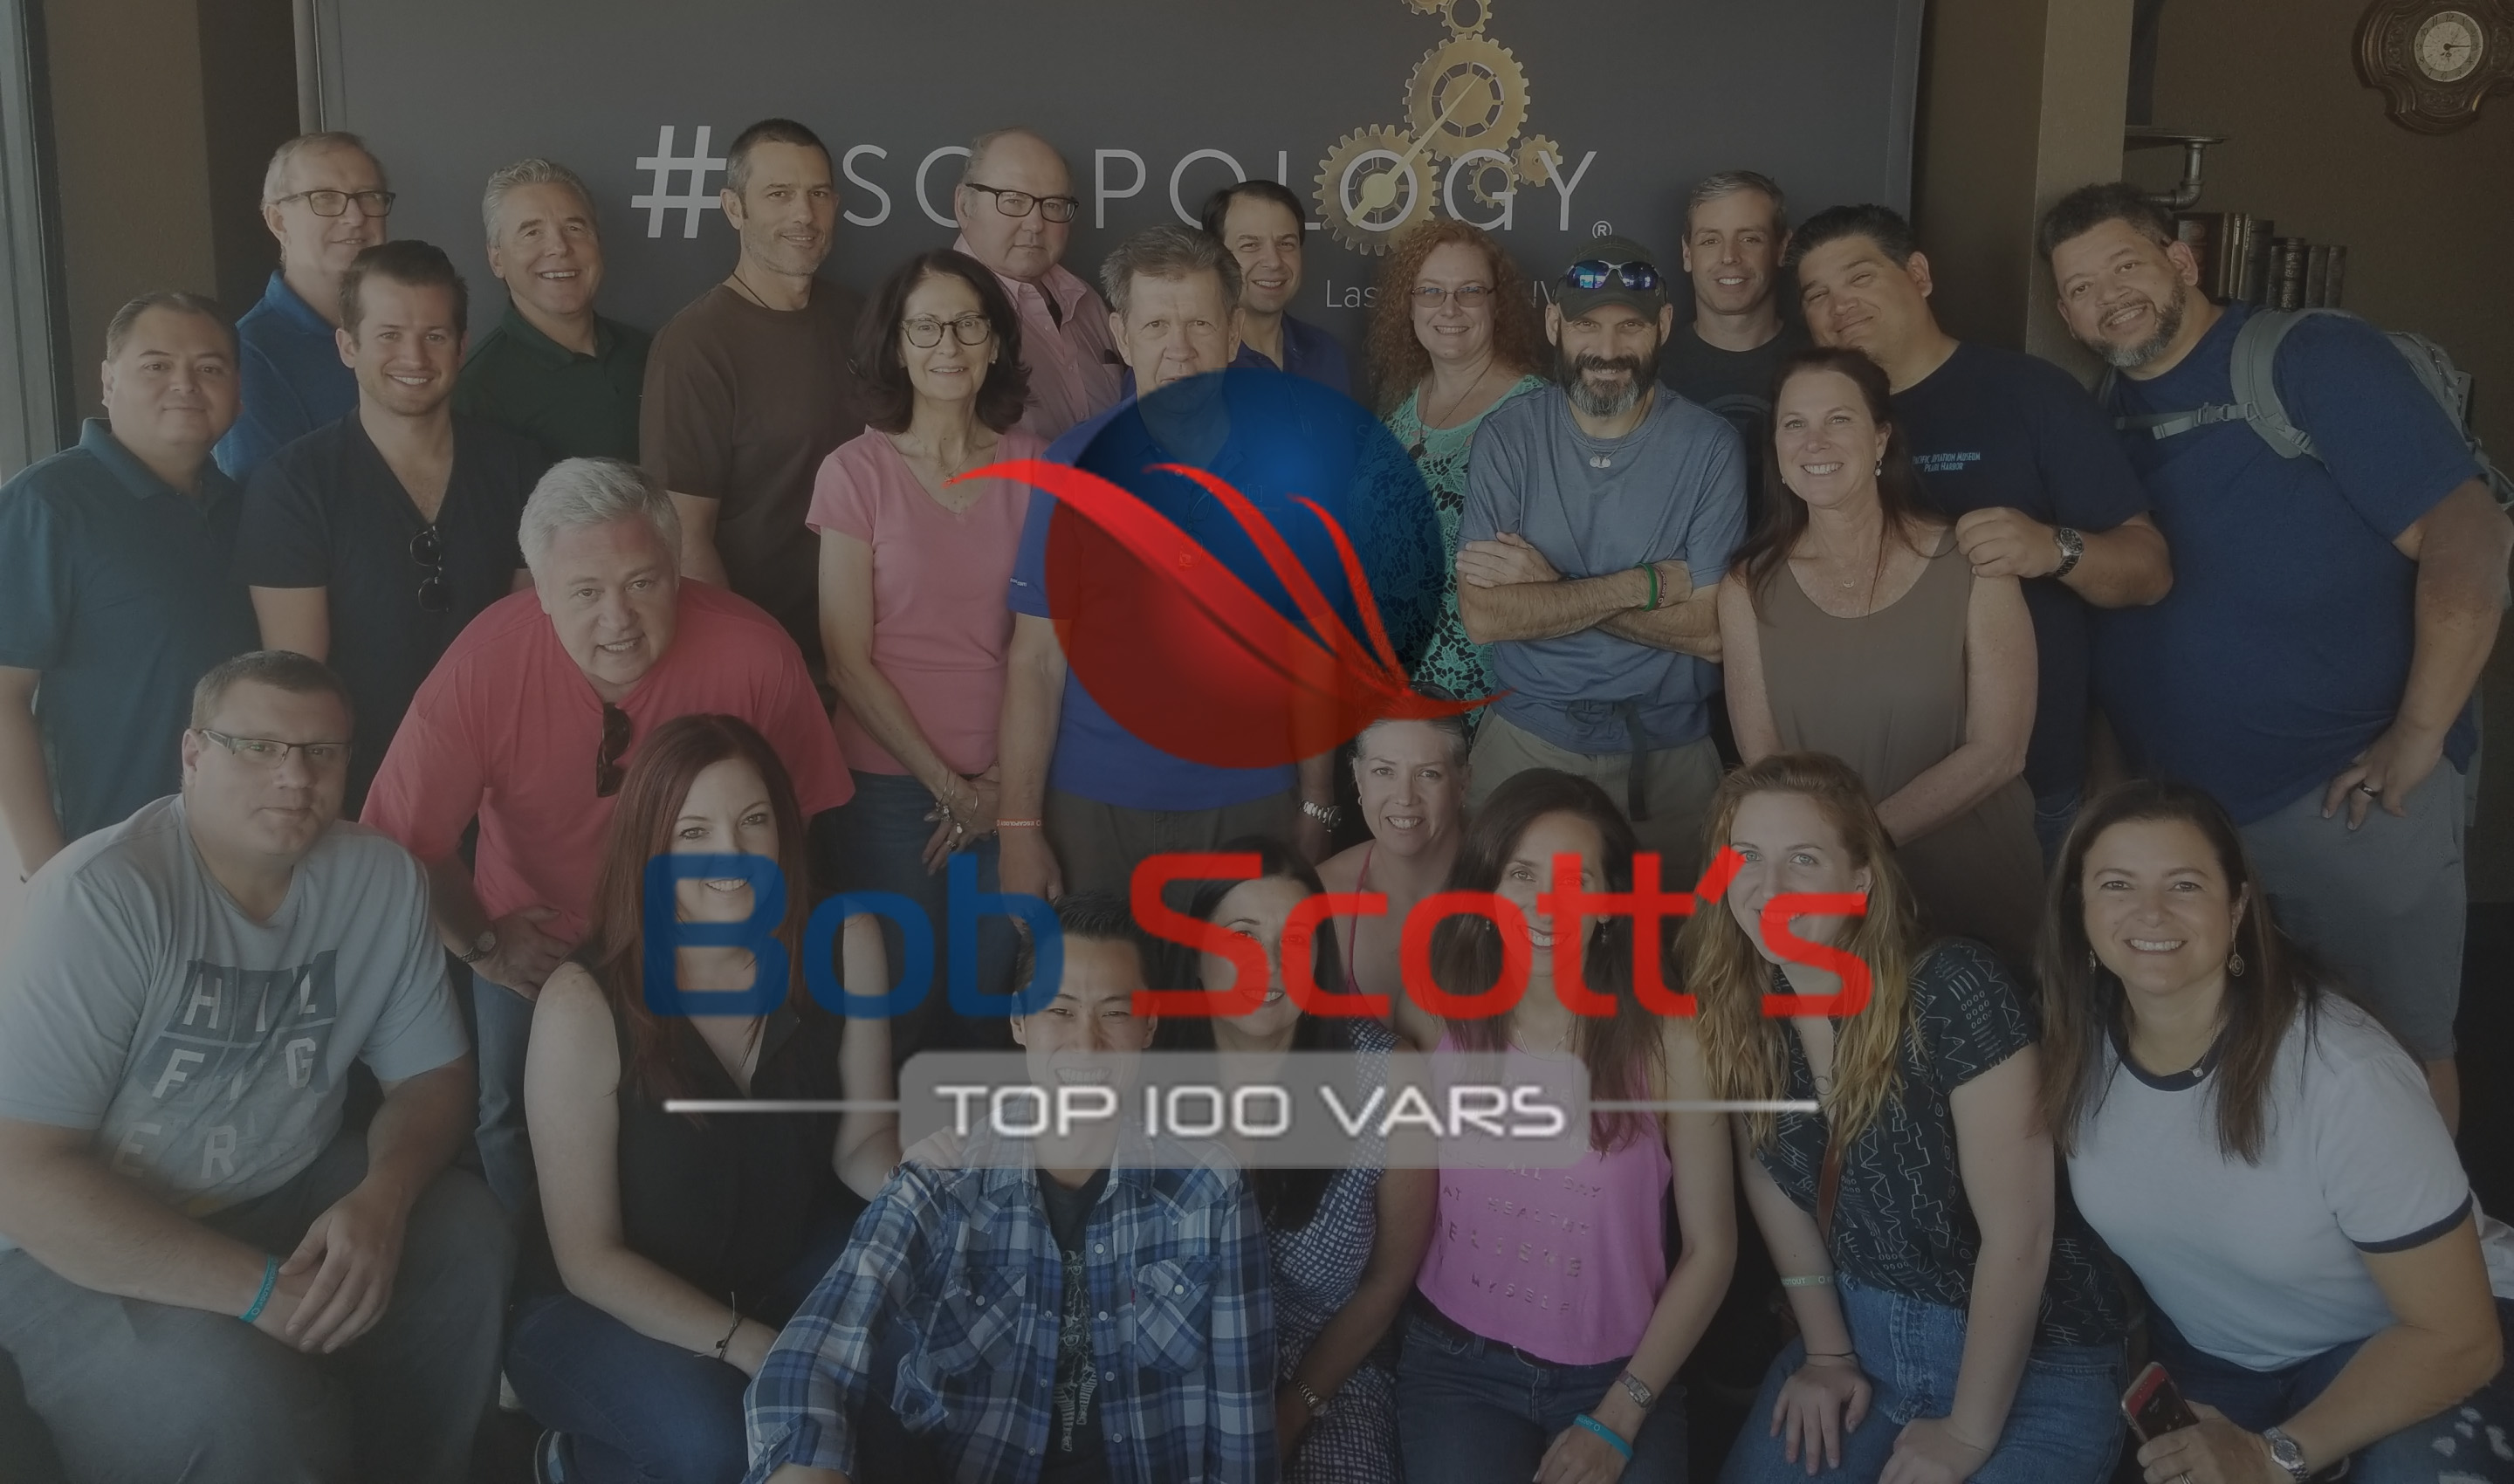 Bob Scott's Top 100 VARs for 2020